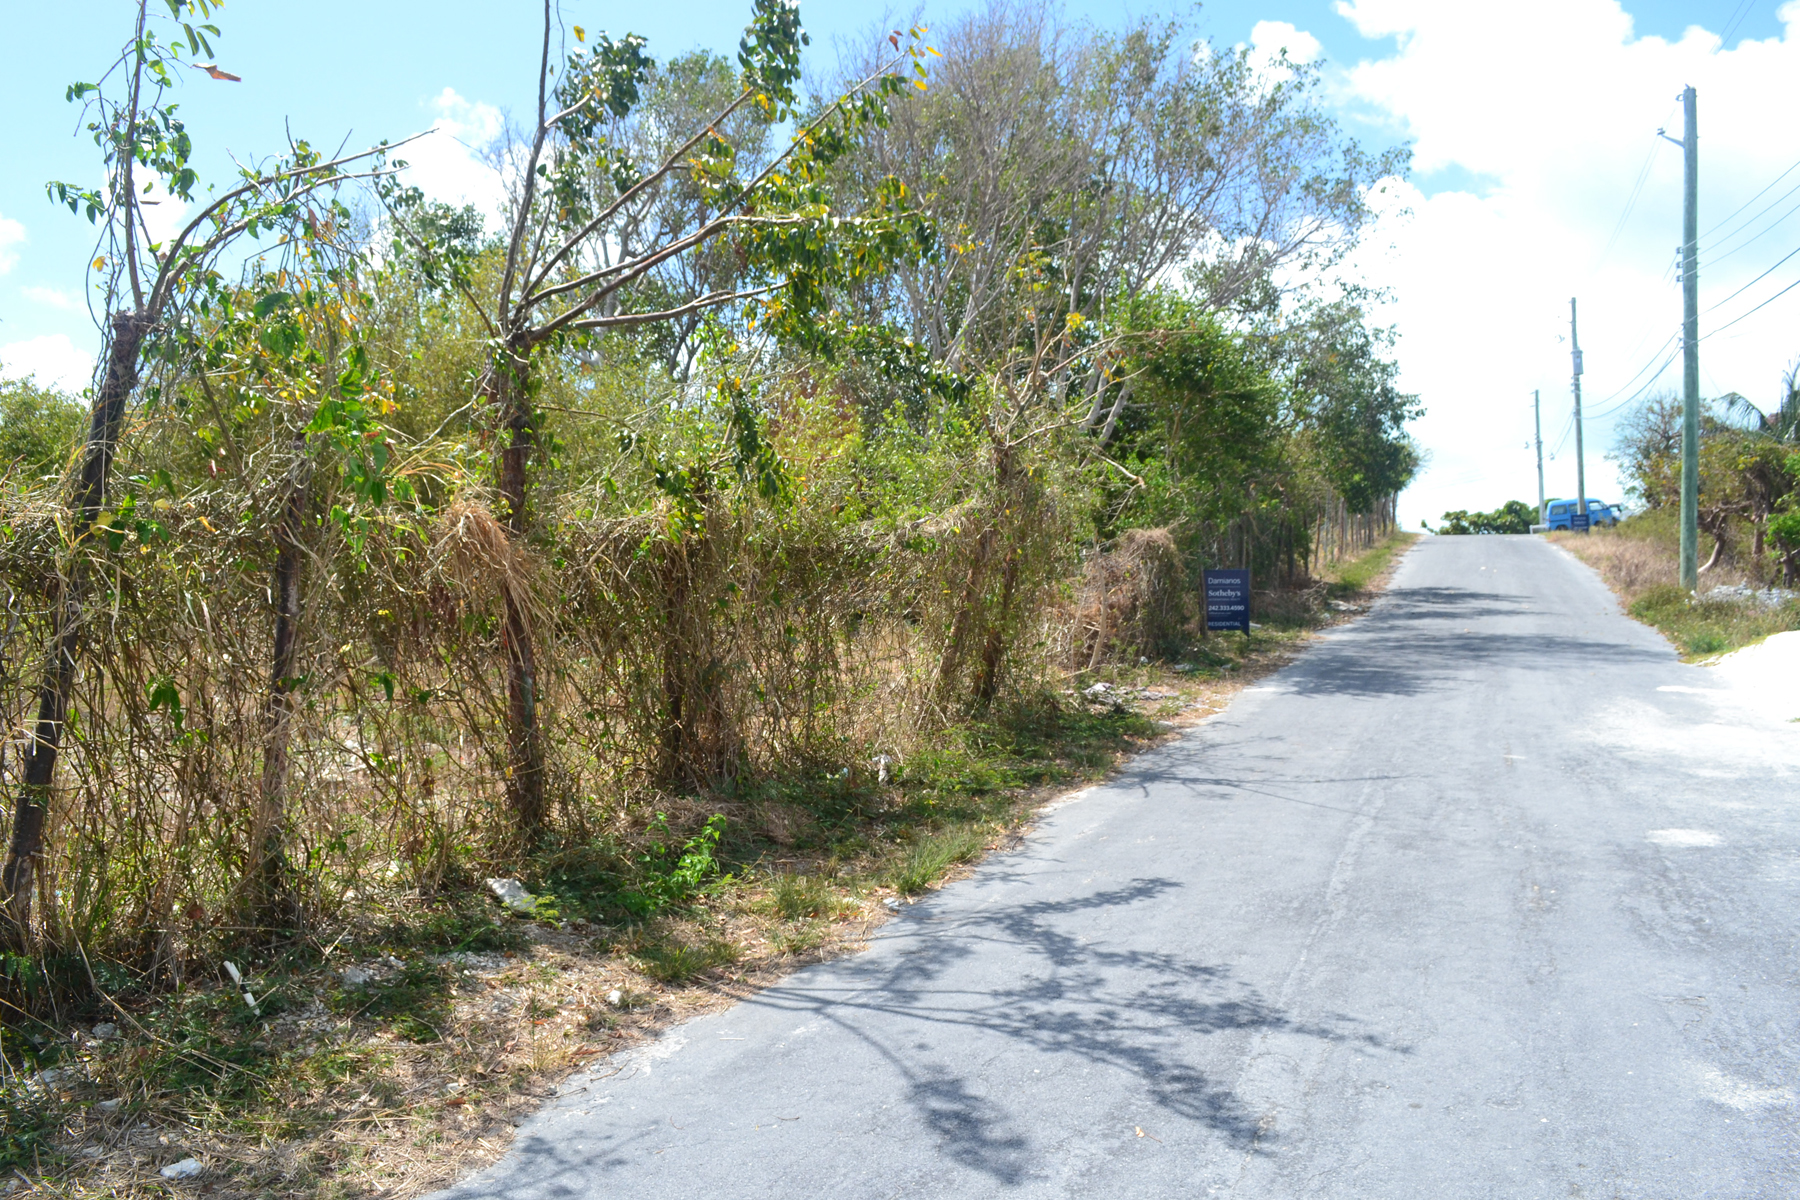 Land for Sale at Lot 31 - East Russell Island Russell Island, Spanish Wells, Eleuthera Bahamas